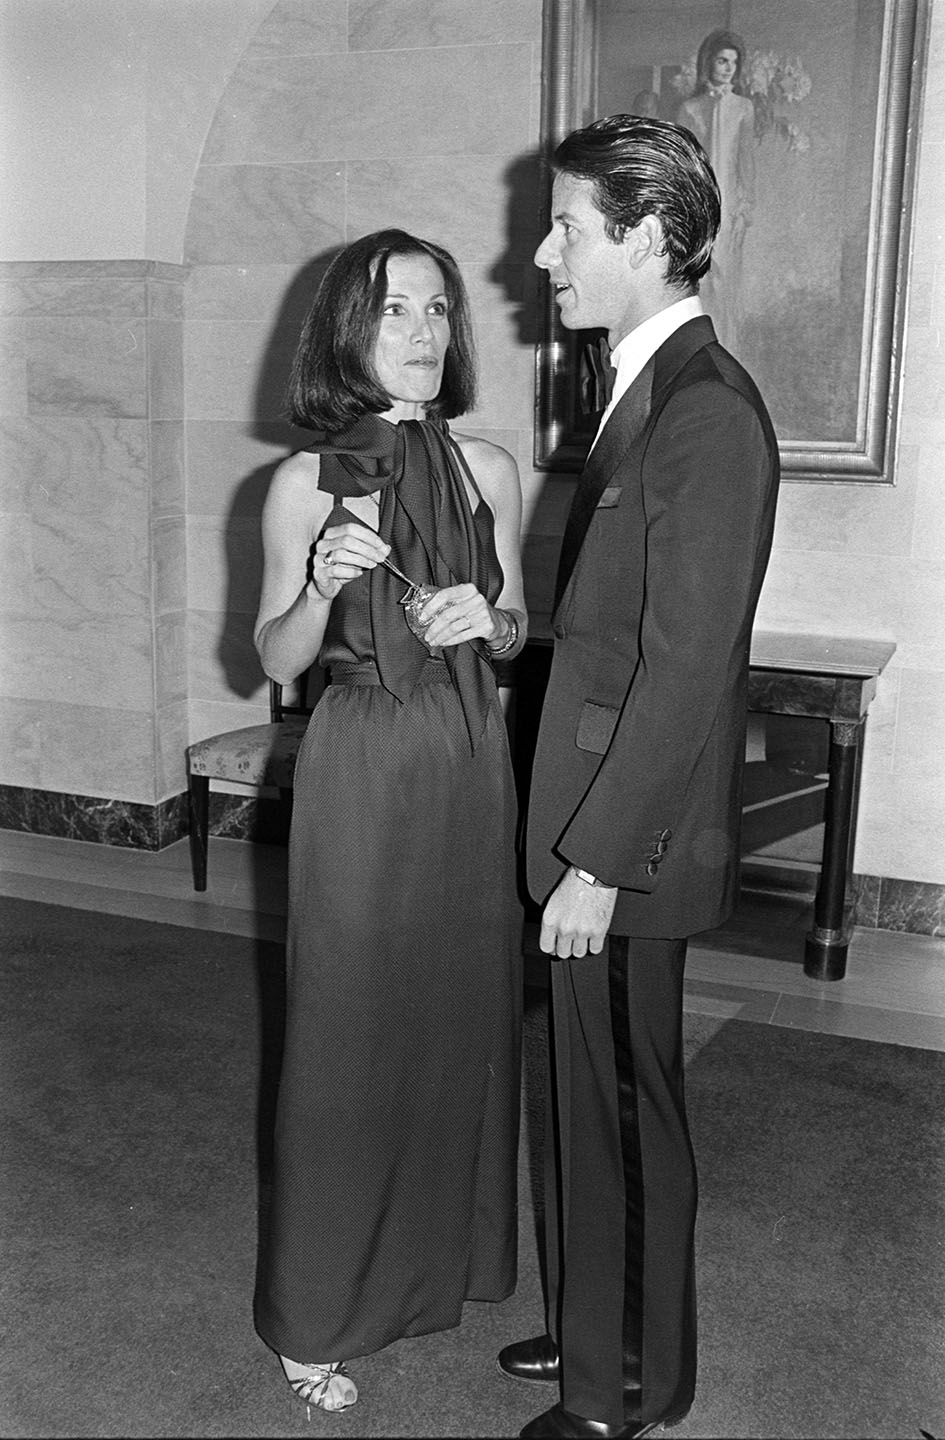 Frances Stein and Calvin Klein attend an event at the White House in Washington, D.C., on October 14, 1976.